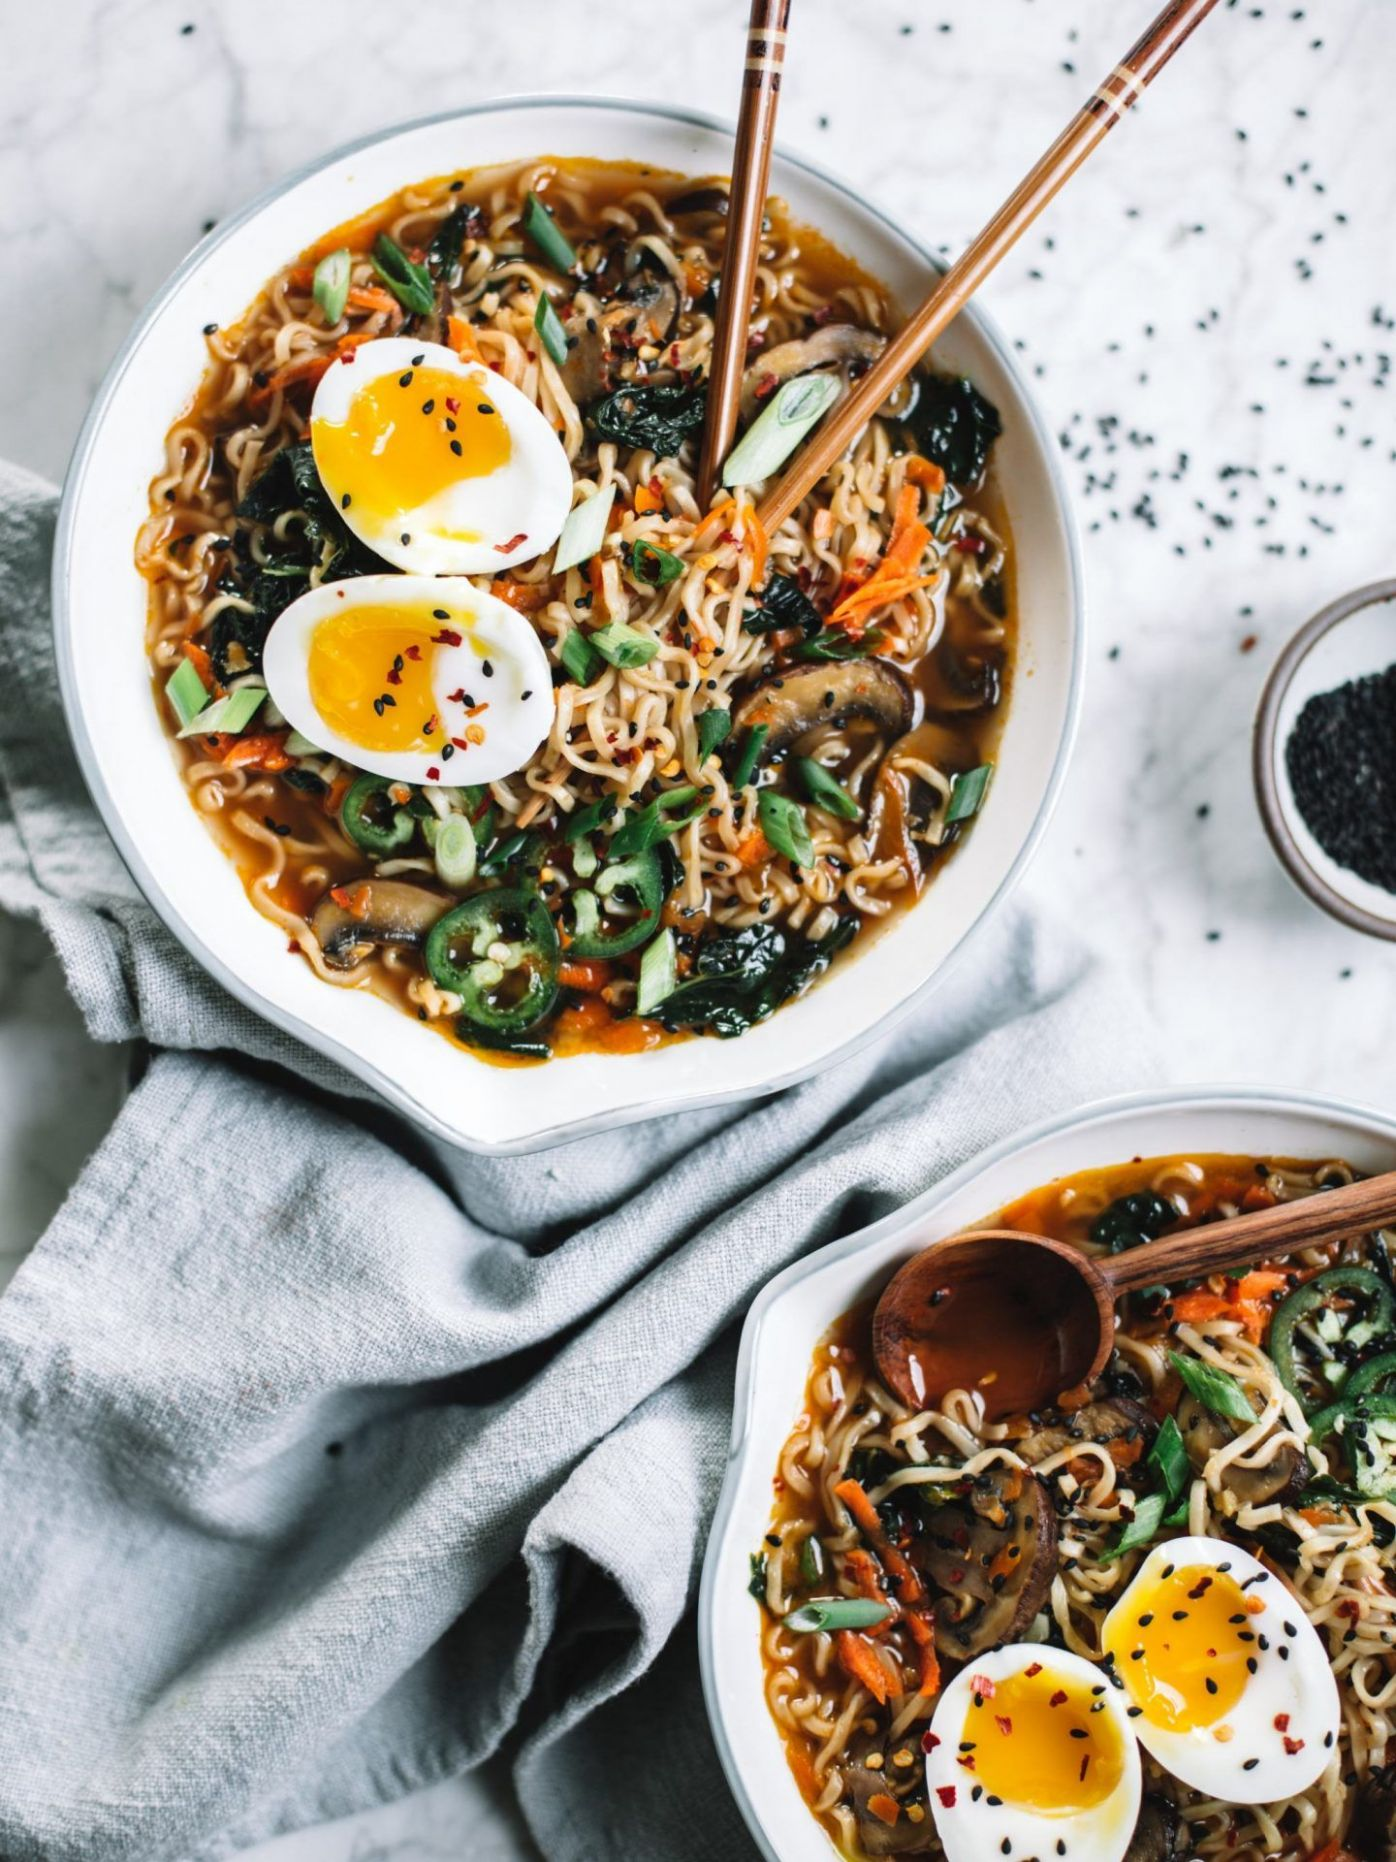 Easy Homemade Healthy Ramen Bowl - Healthy Recipes Ramen Noodles